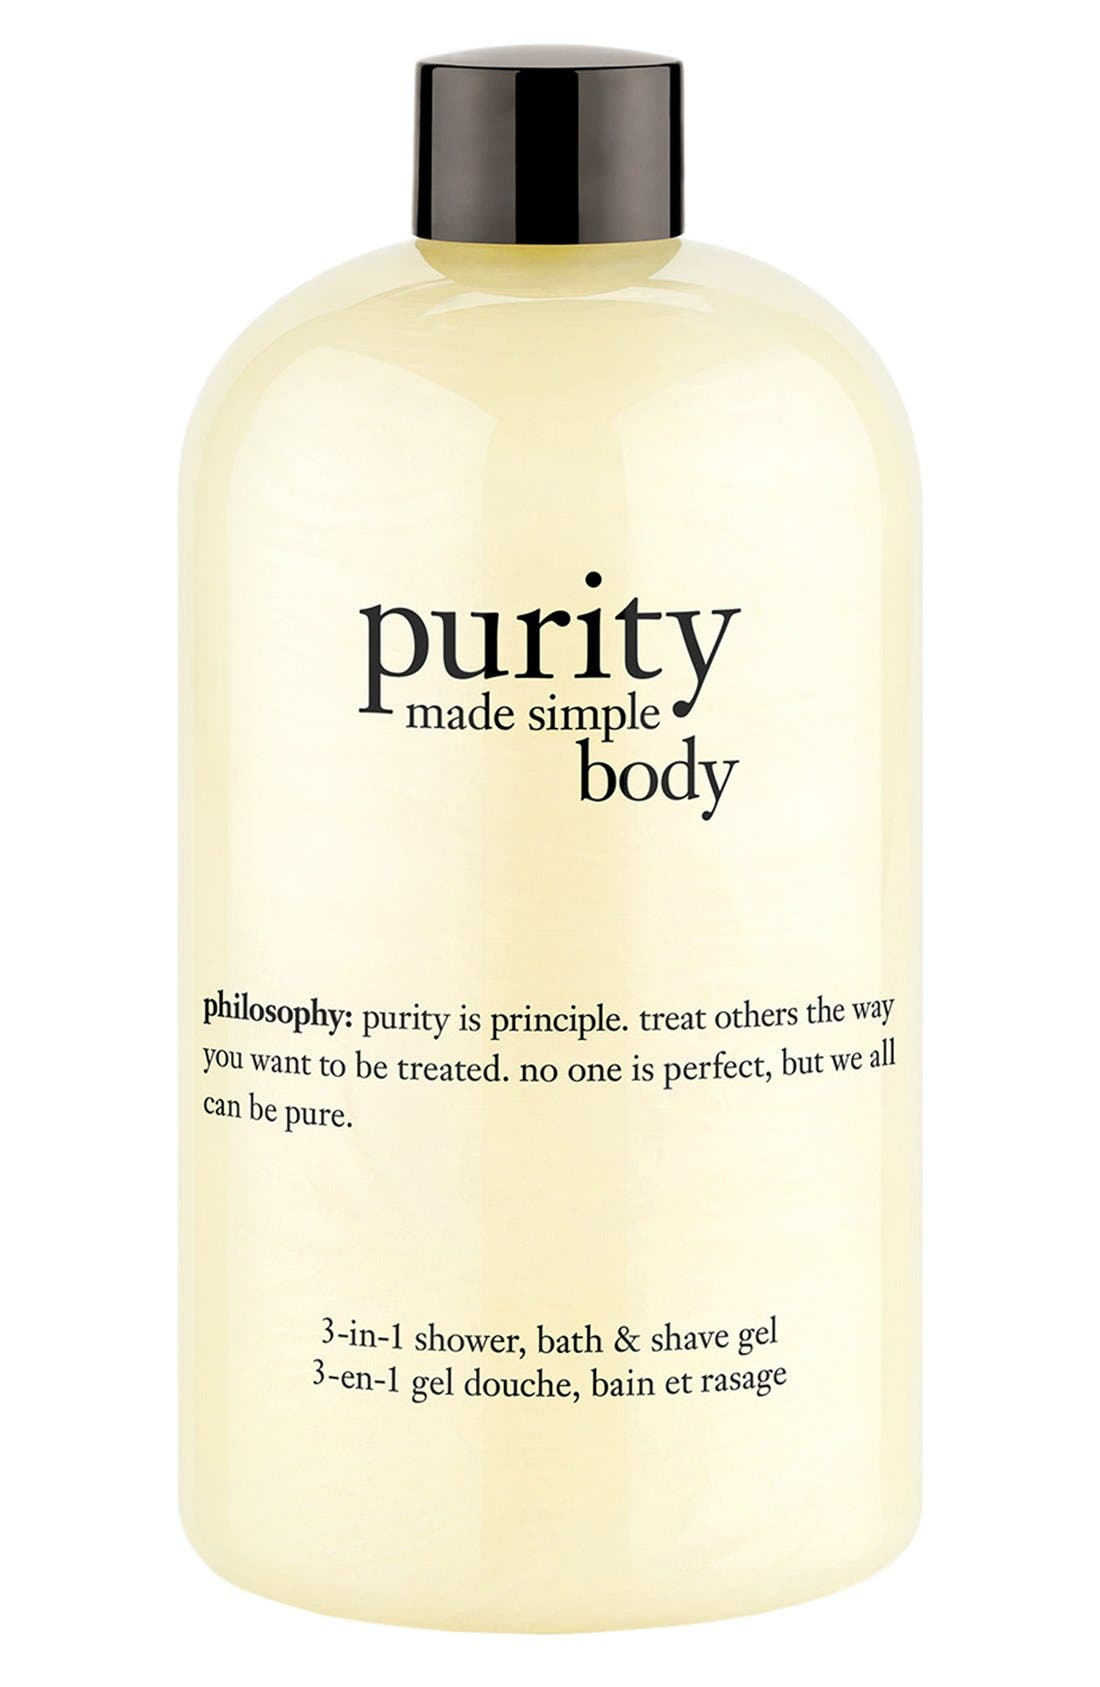 PHILOSOPHY 'purity made simple body' 3-in-1 shower, bath & shave gel, Main, color, 000